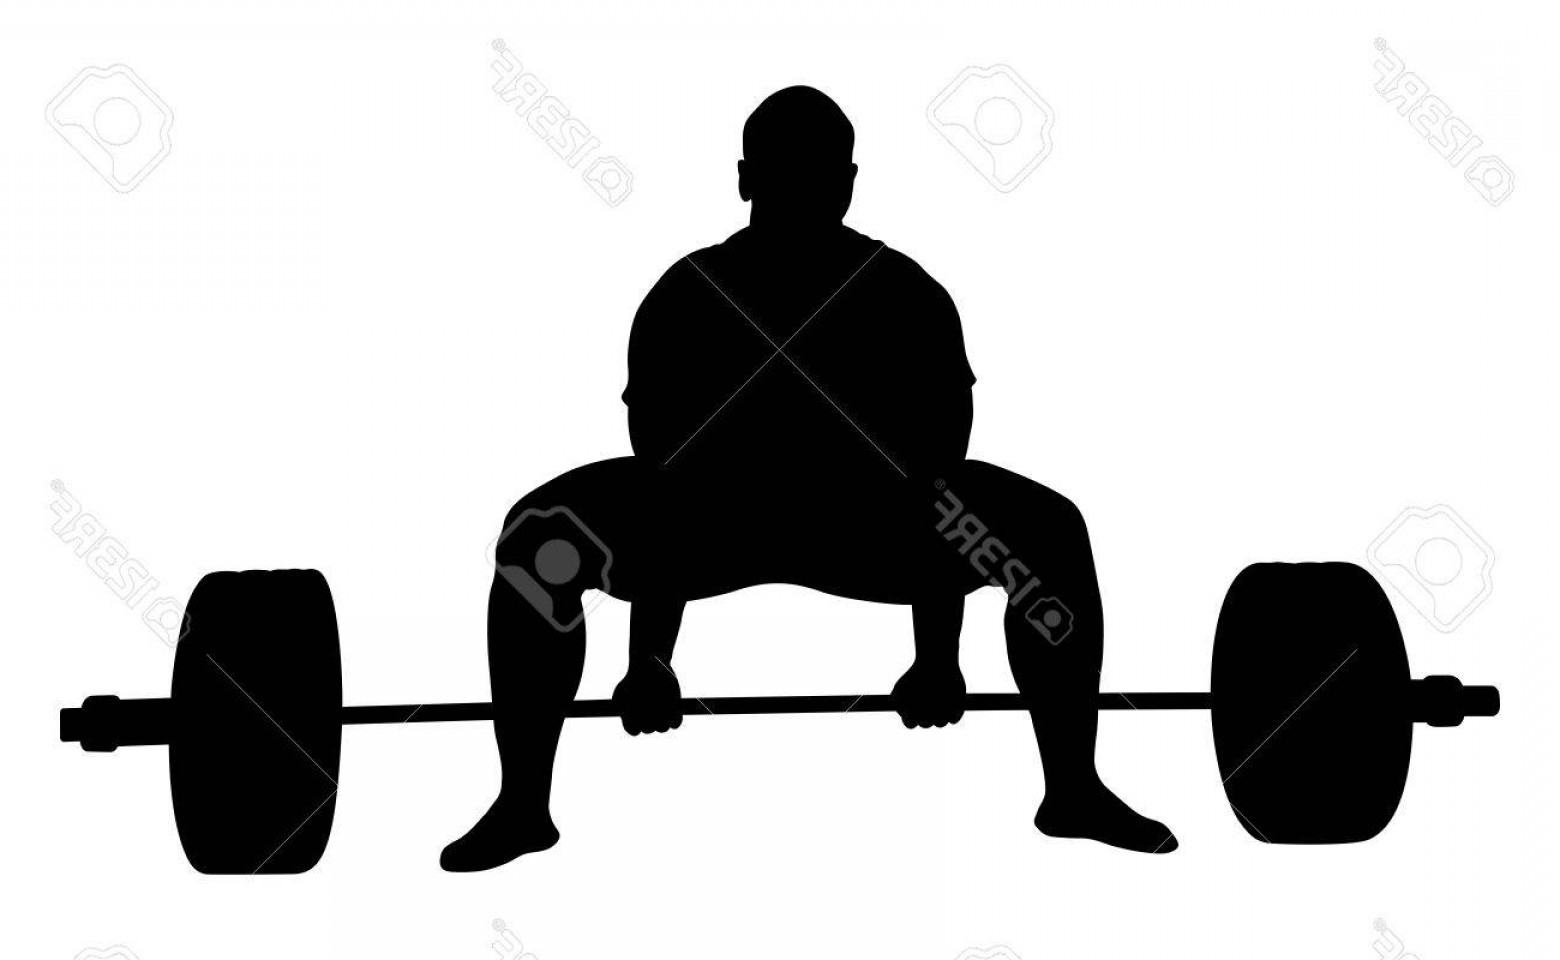 Vector Barbell Press: Photostock Vector Front View Athlete Powerlifter Exercise Deadlift Black Silhouette